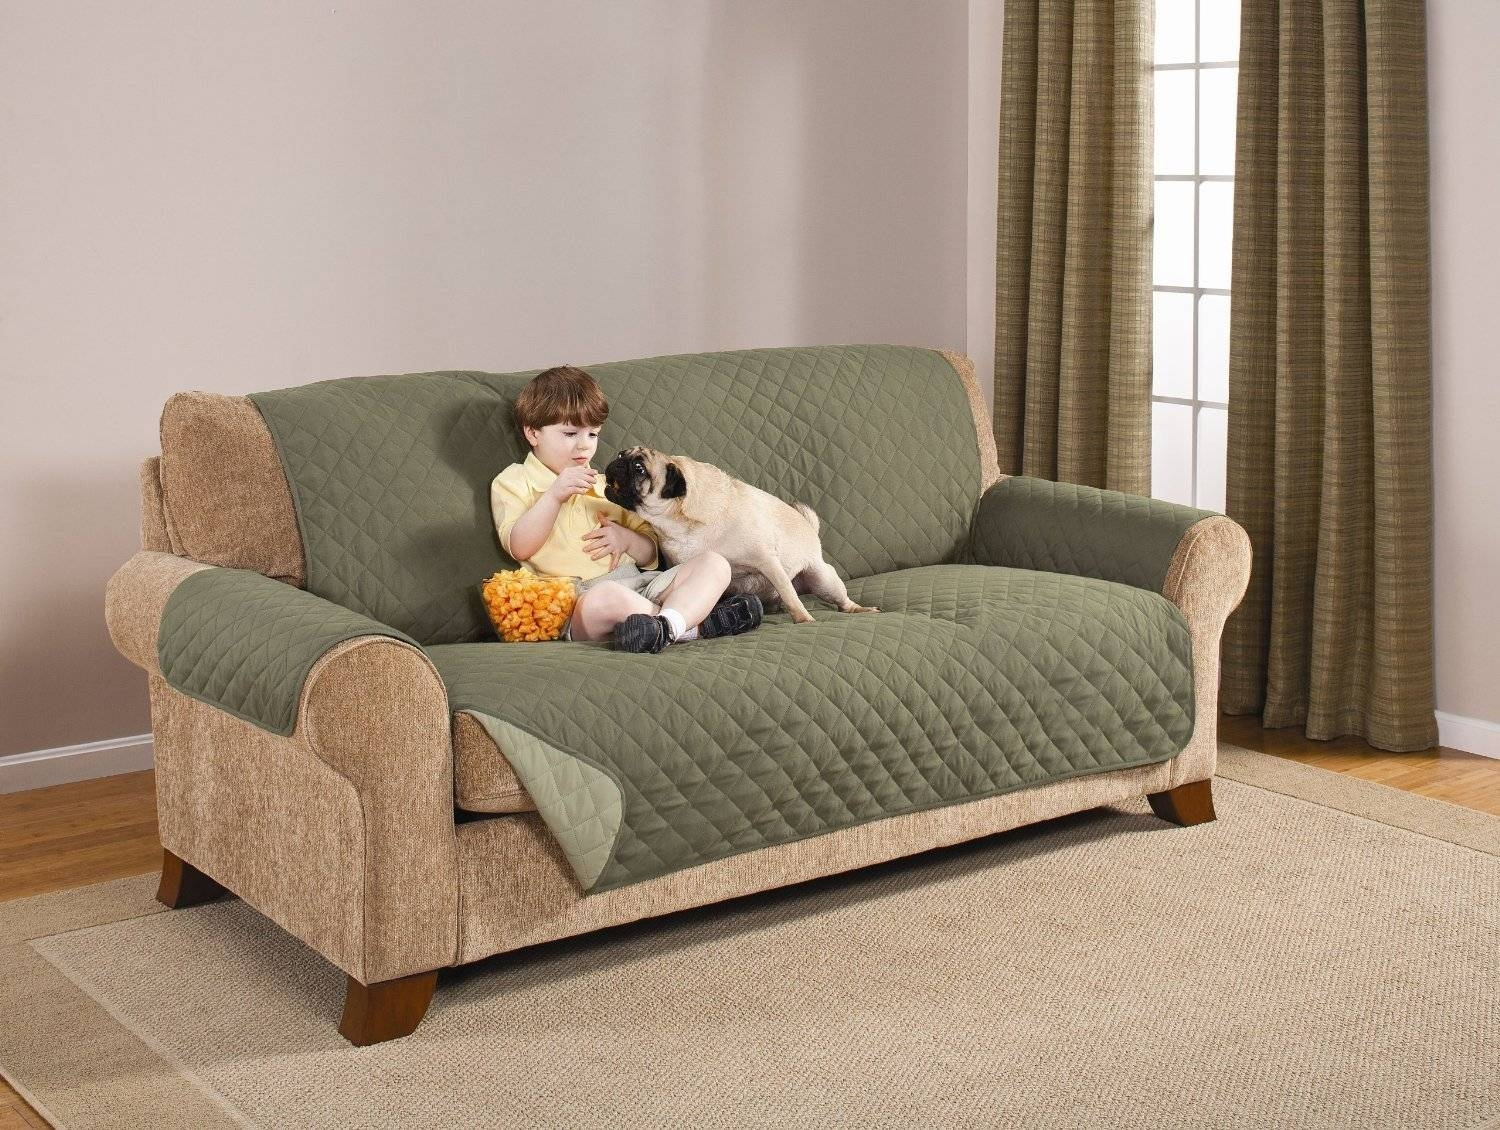 Top 10 Best Sofa Covers For Pets - Pet Sofa Covers To Keep Clean with regard to Dog Sofas and Chairs (Image 12 of 15)